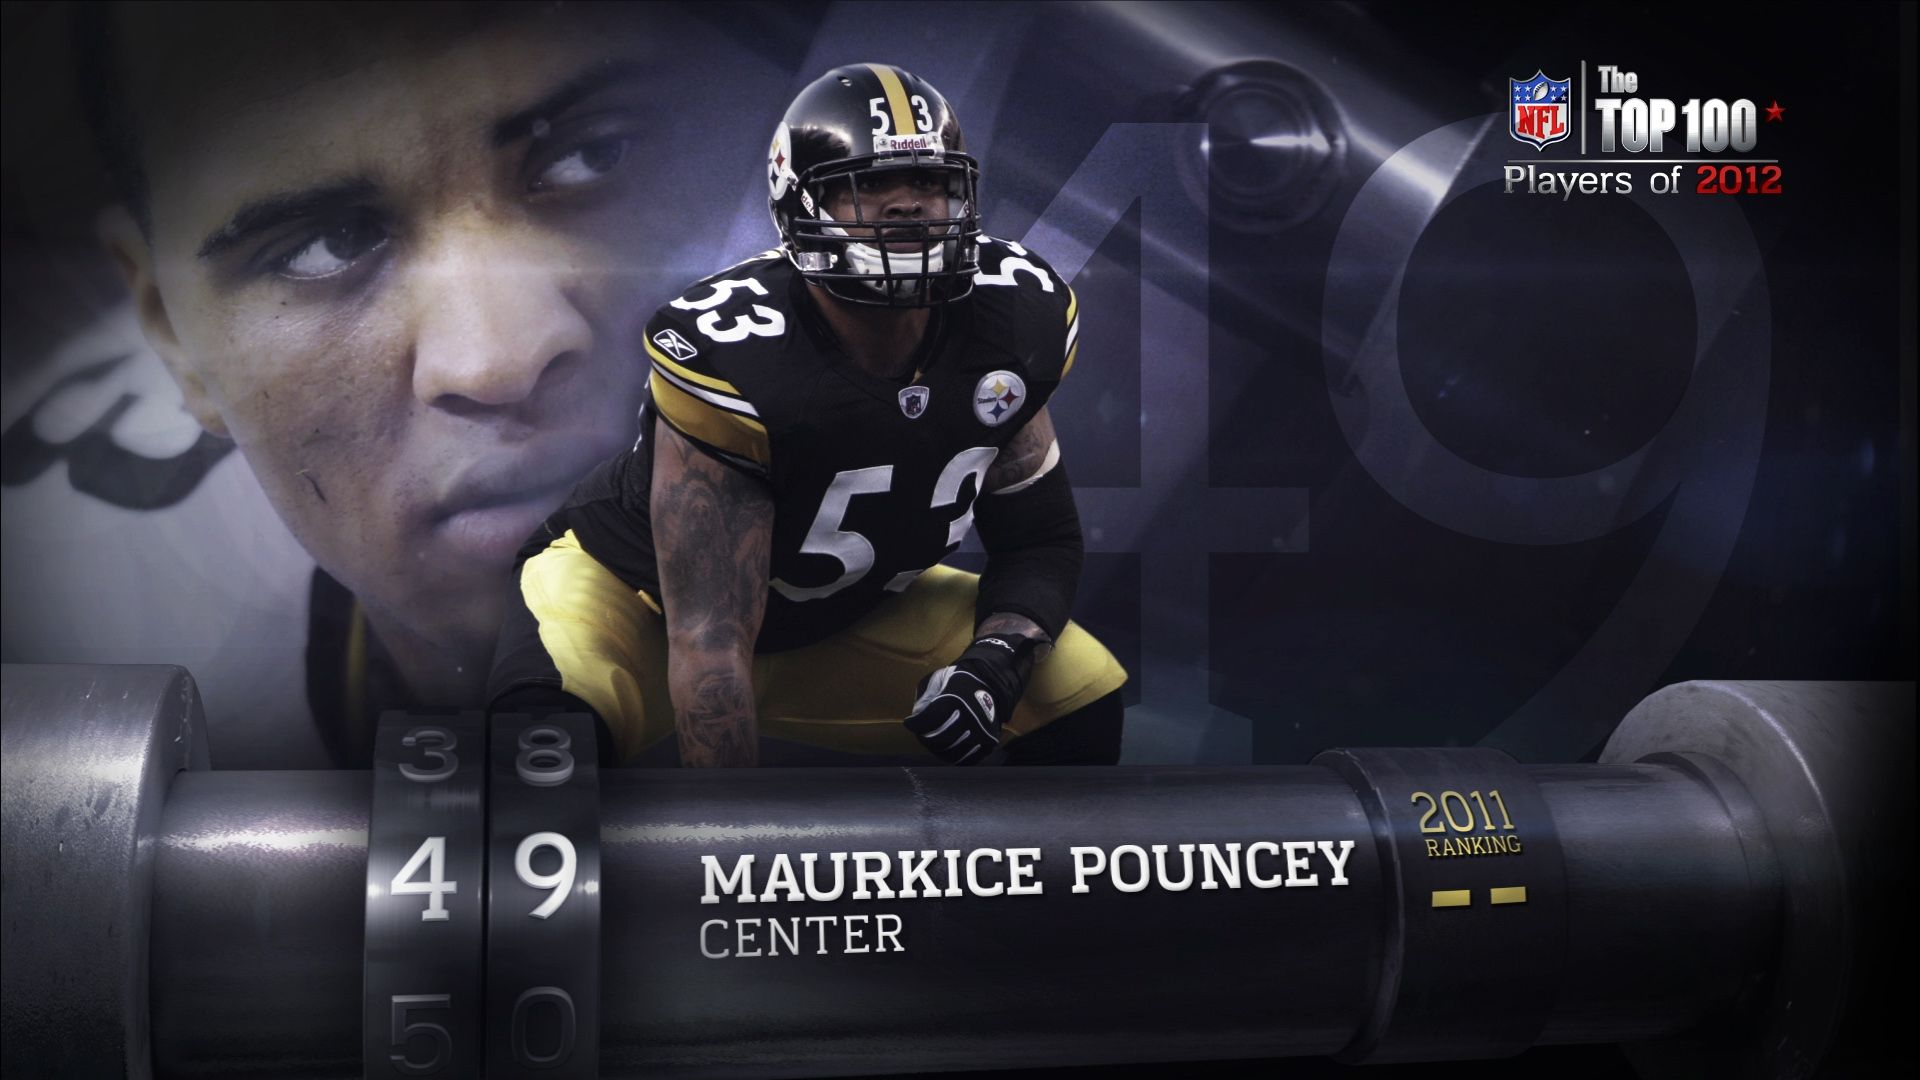 #49 - Maurkice Pouncey, Pittsburgh Steelers